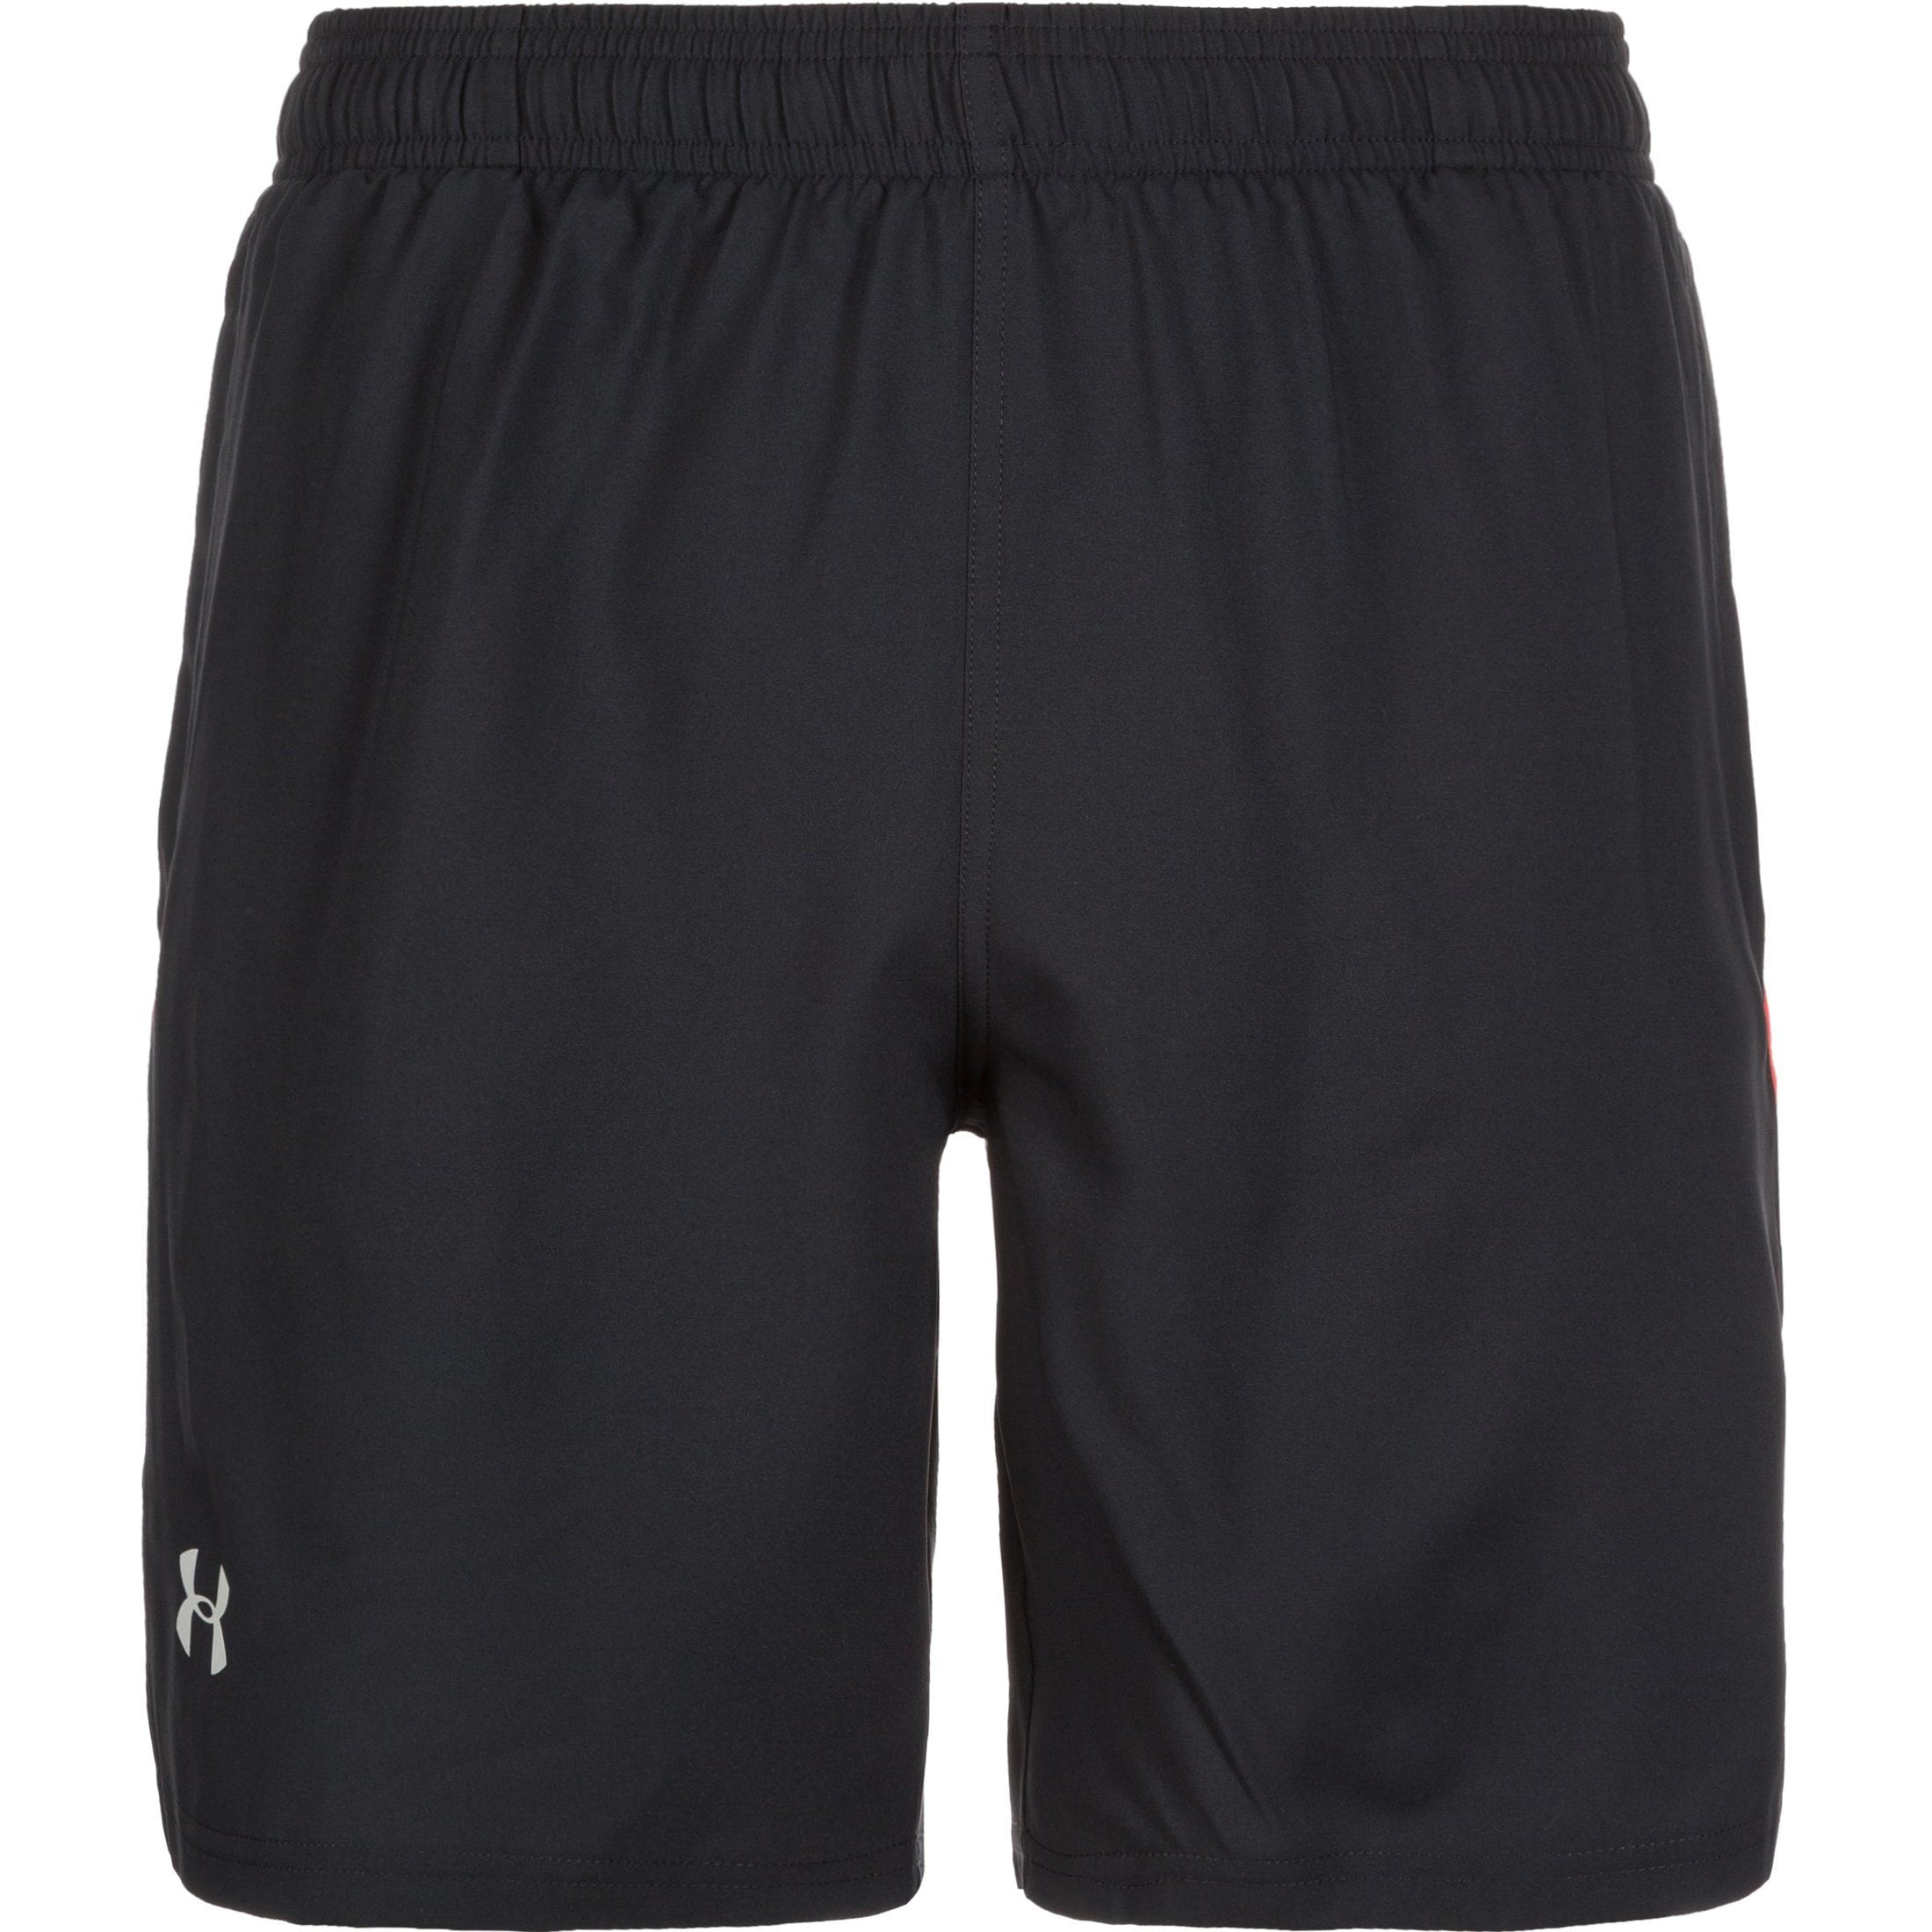 Under Armour Laufshorts Heatgear Launch | Sportbekleidung > Sporthosen > Laufhosen | Schwarz | Under Armour